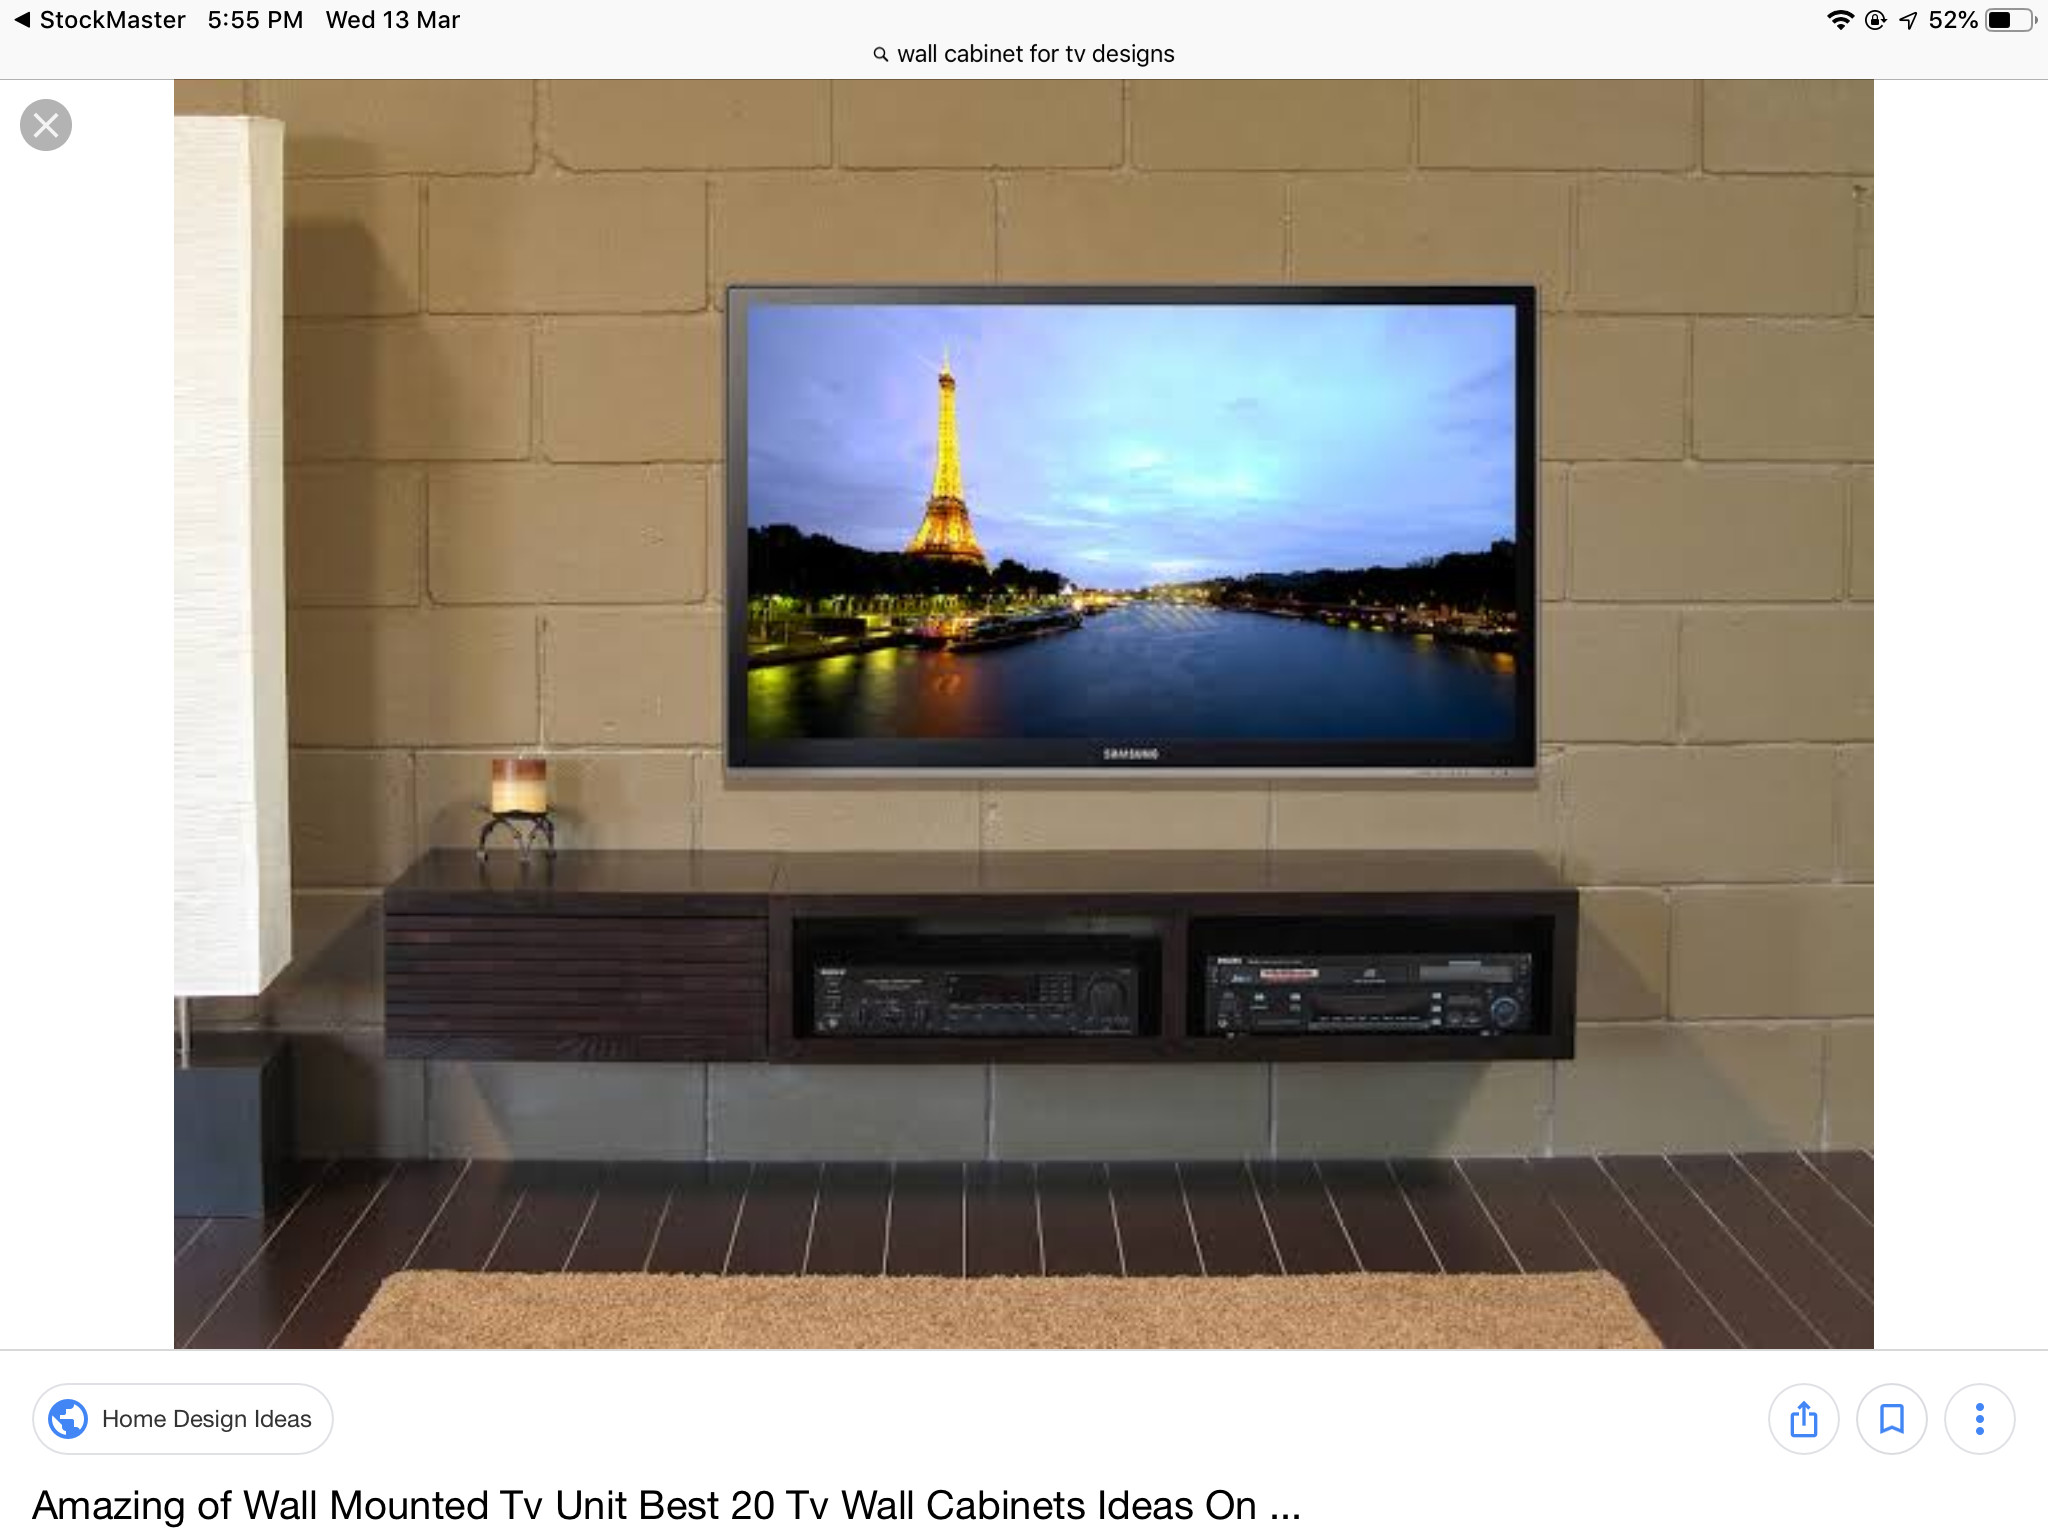 Good Size Tv for Bedroom New Pin by Naeem On Wall Cabinet